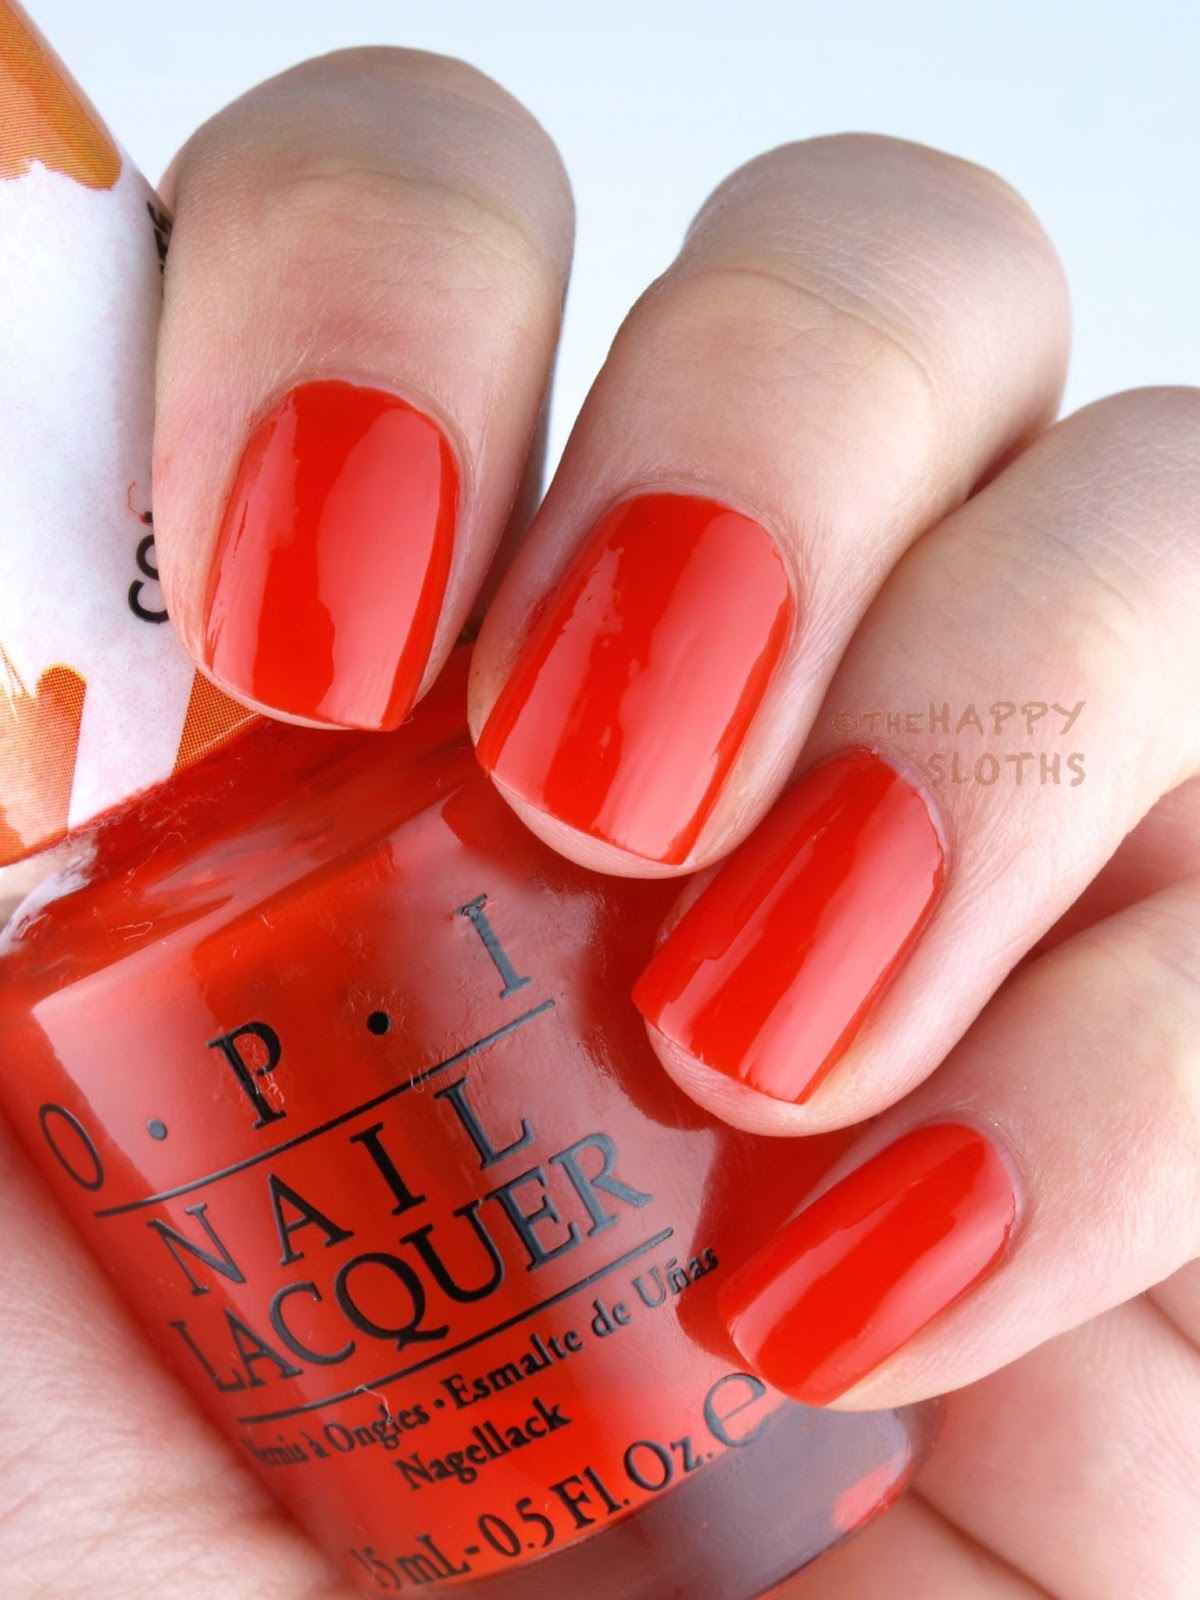 OPI Color Paints Blendable Nail Lacquer Collection: Review and Swatches